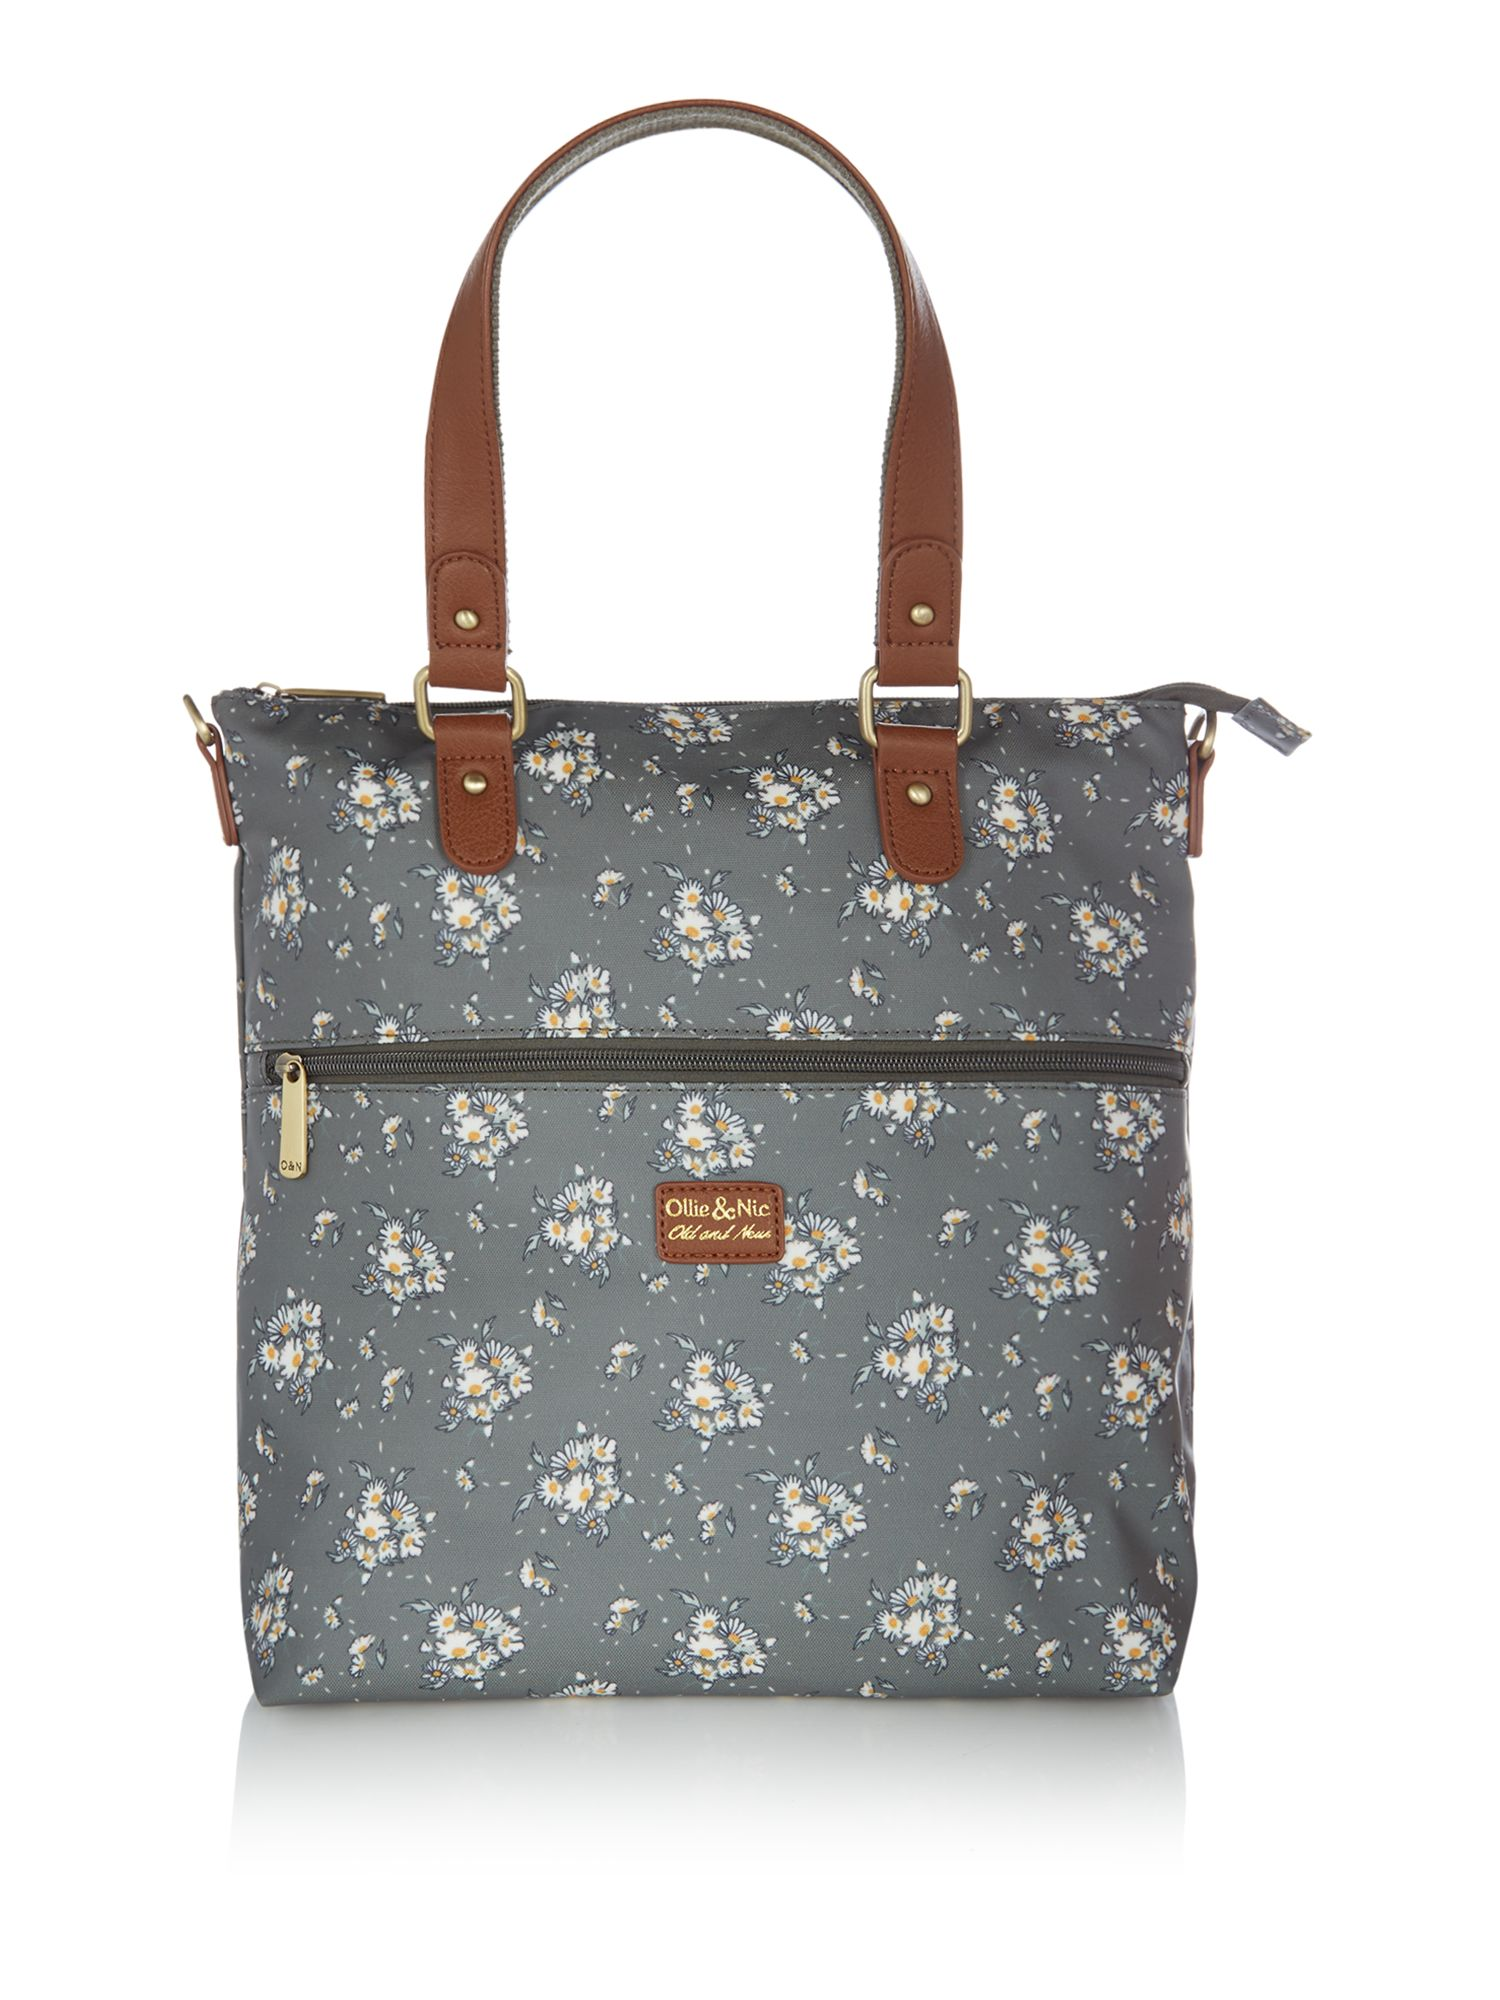 Ollie & Nic Ditsy day tote bag, Olive